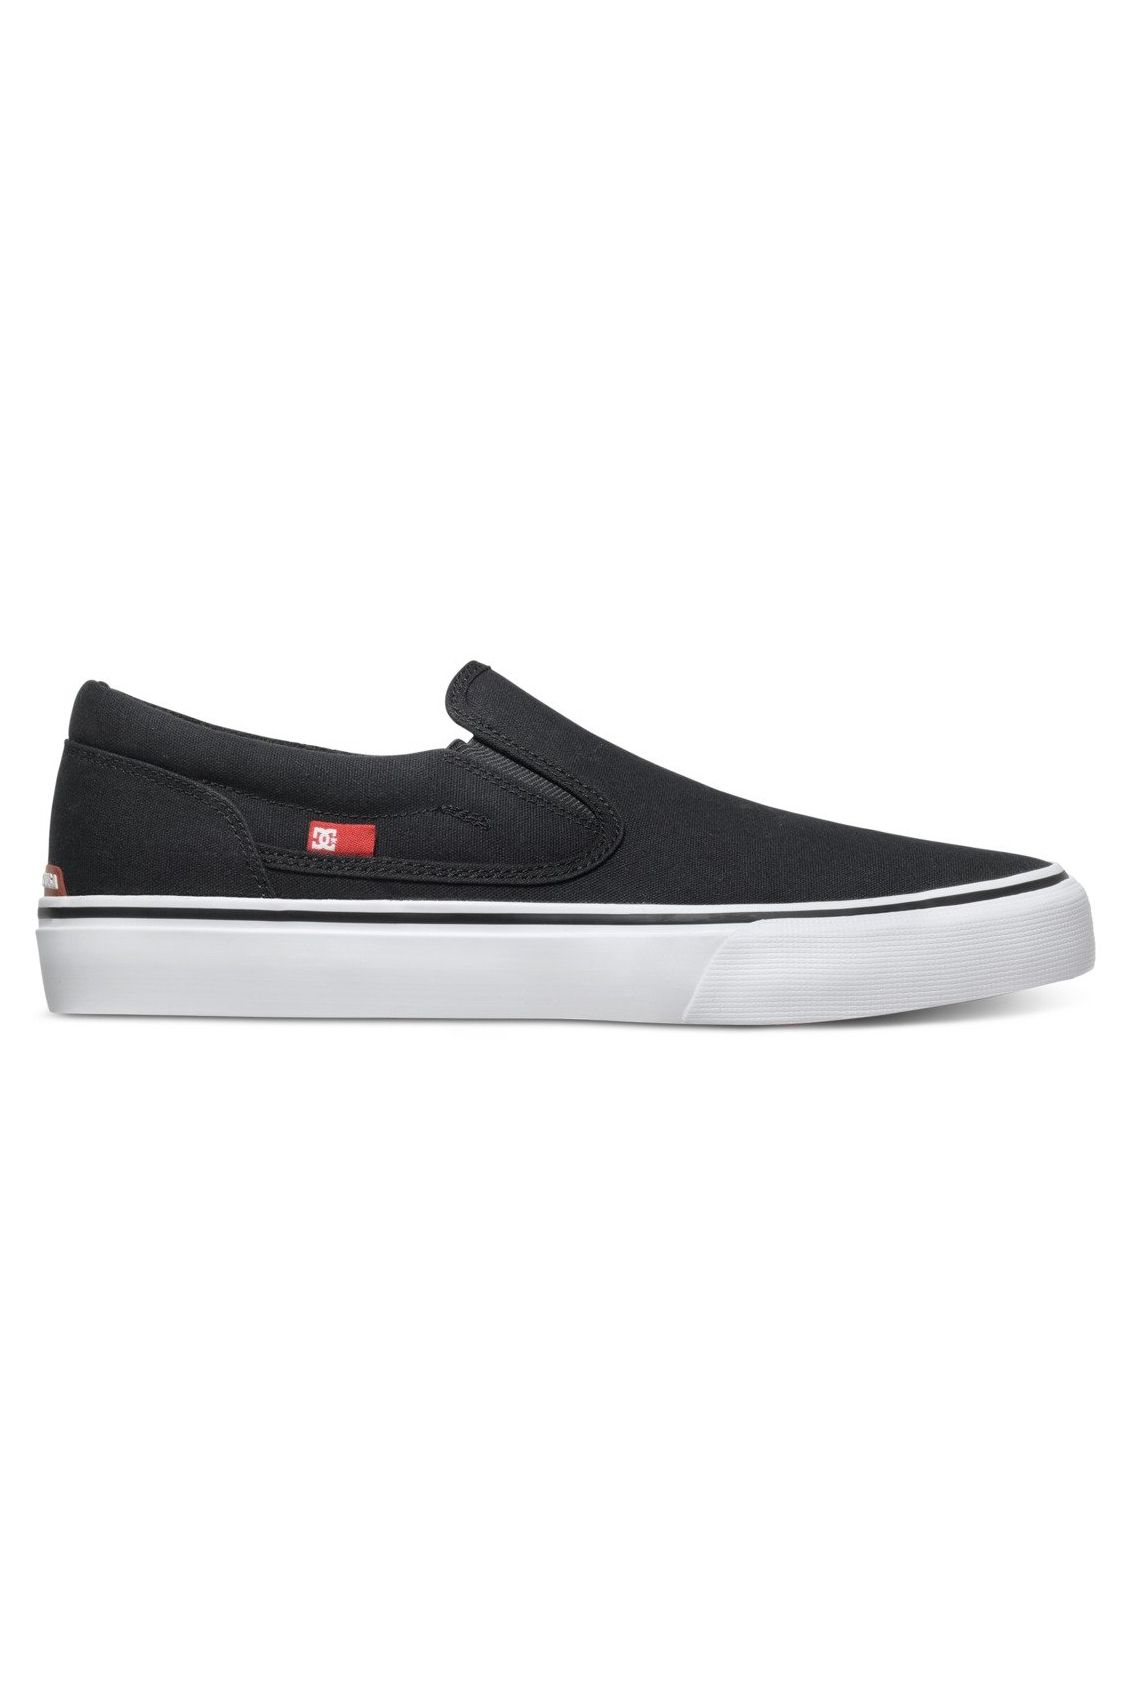 Tenis DC Shoes TRASE SLIP-ON TX Black/White